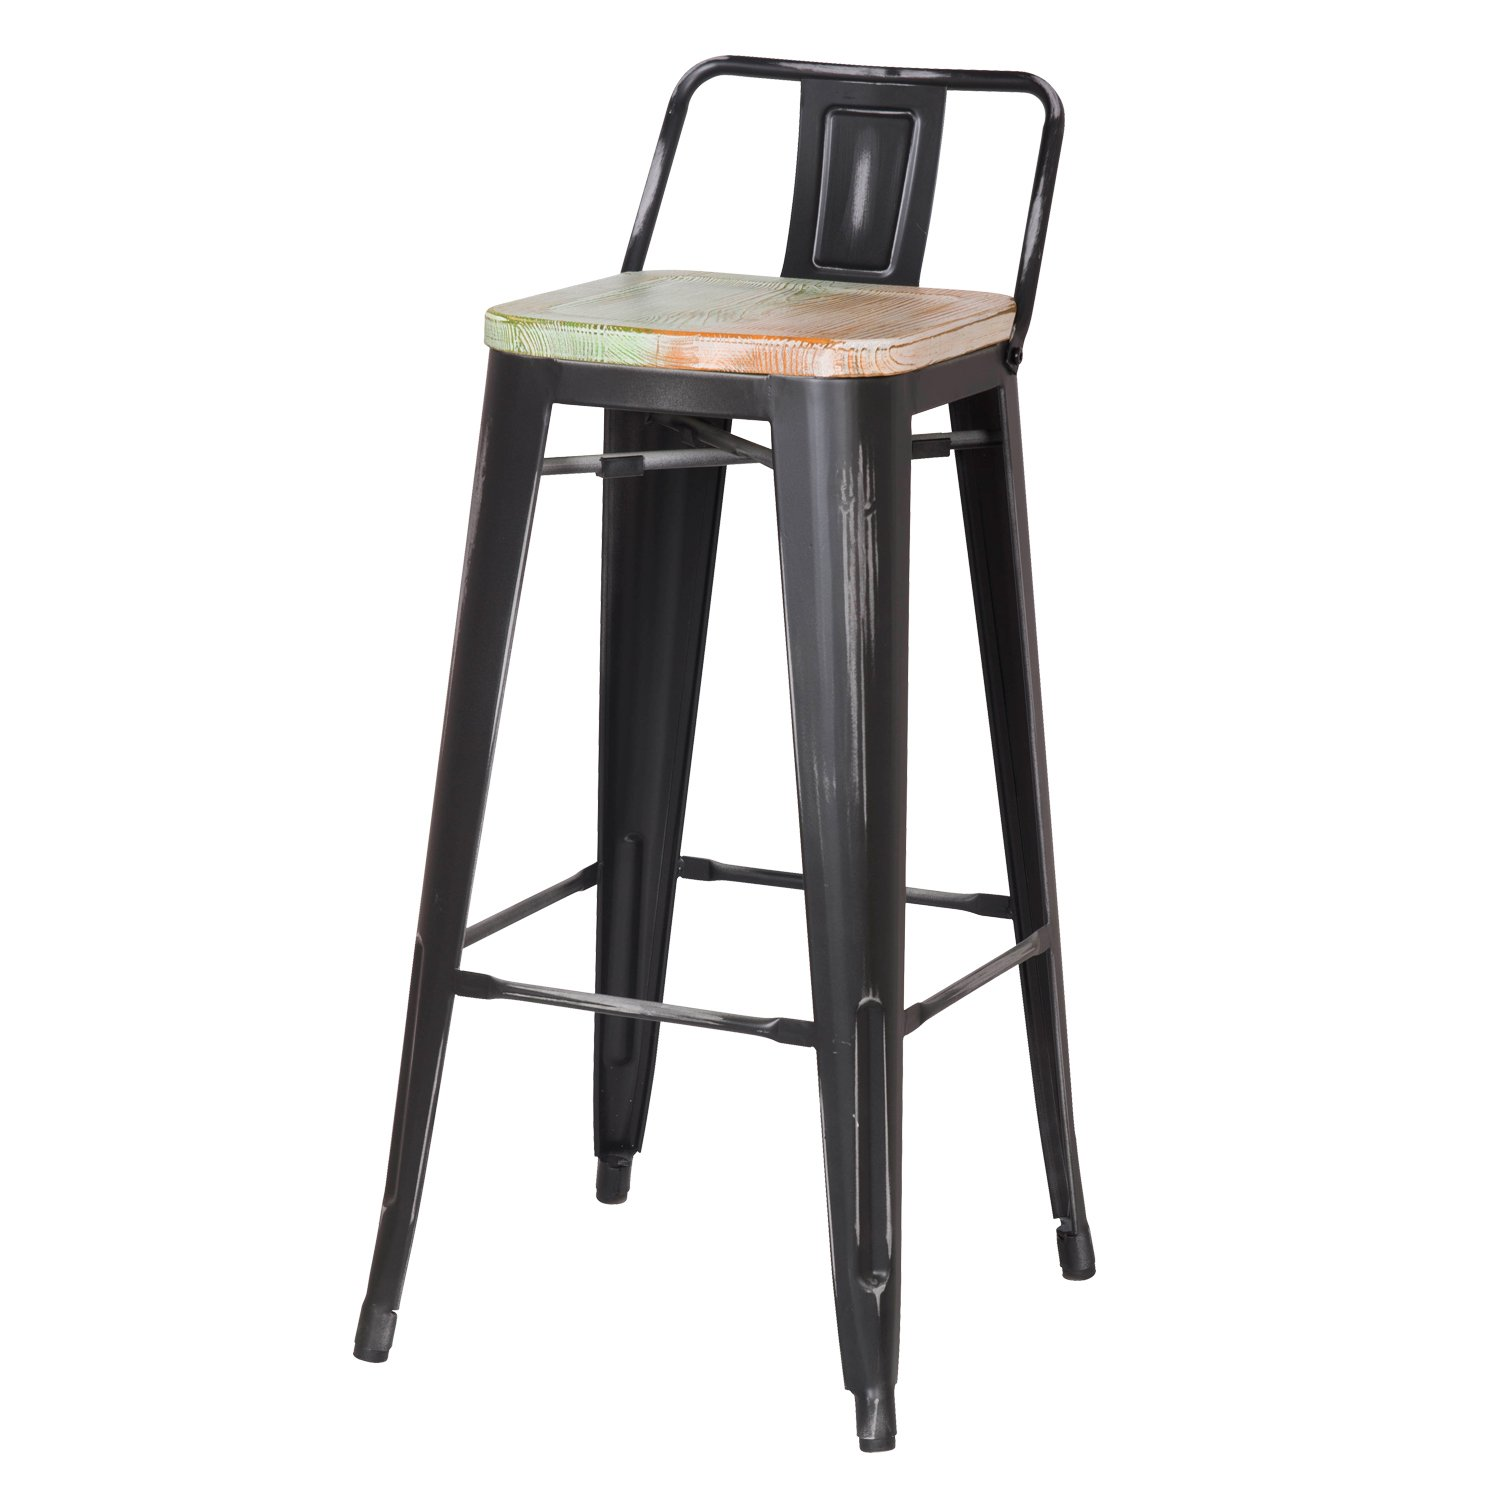 Joveco 30 Inches Industrial Chic Distressed Metal Bar Stool with Low Back, Set of 2 Black with White Seat by Joveco